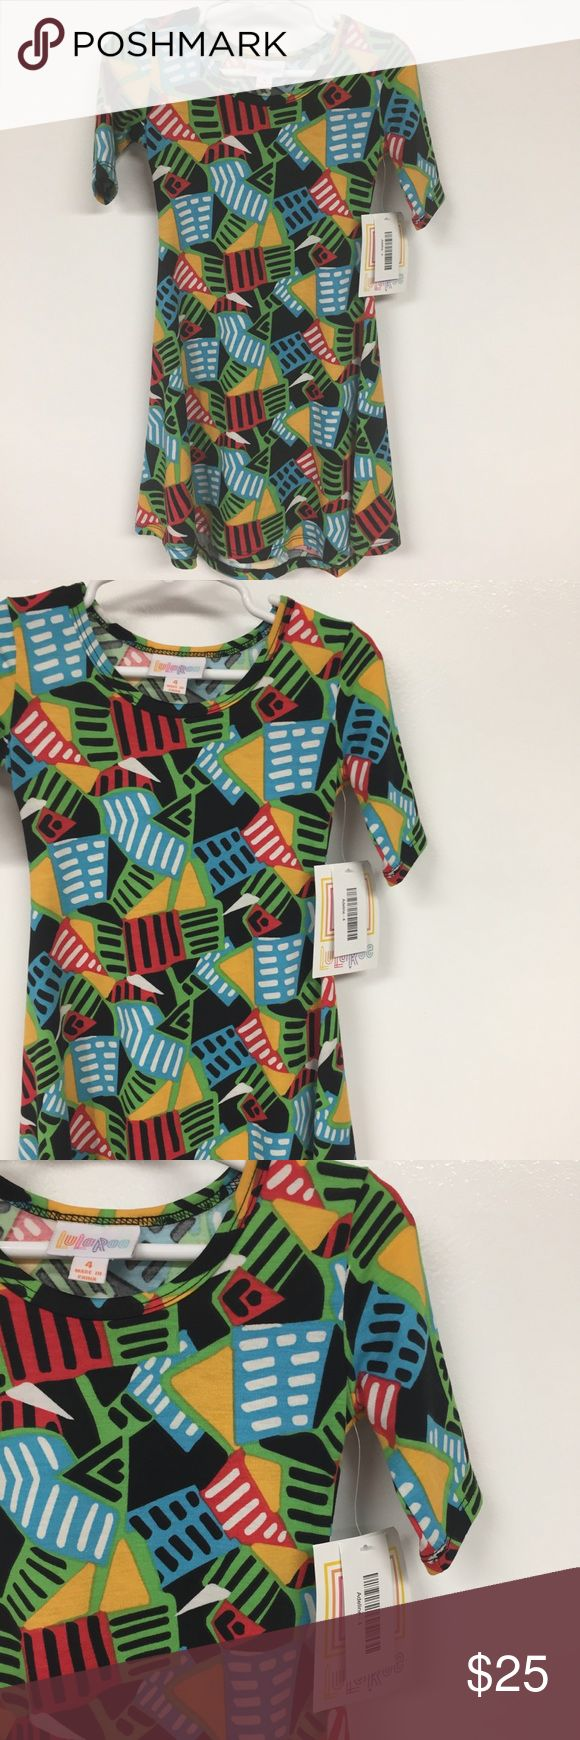 NWT LuLaRoe Kids Adeline Dress SZ 4 Bright Colors Black, blue, green, magenta, and yellow- lots of beautiful bright colors in this Adeline! The Adeline has a fitted bodice and a full skirt. Pair it with leggings to wear in fall in spring. Fits size 3-4. LuLaRoe Dresses Casual